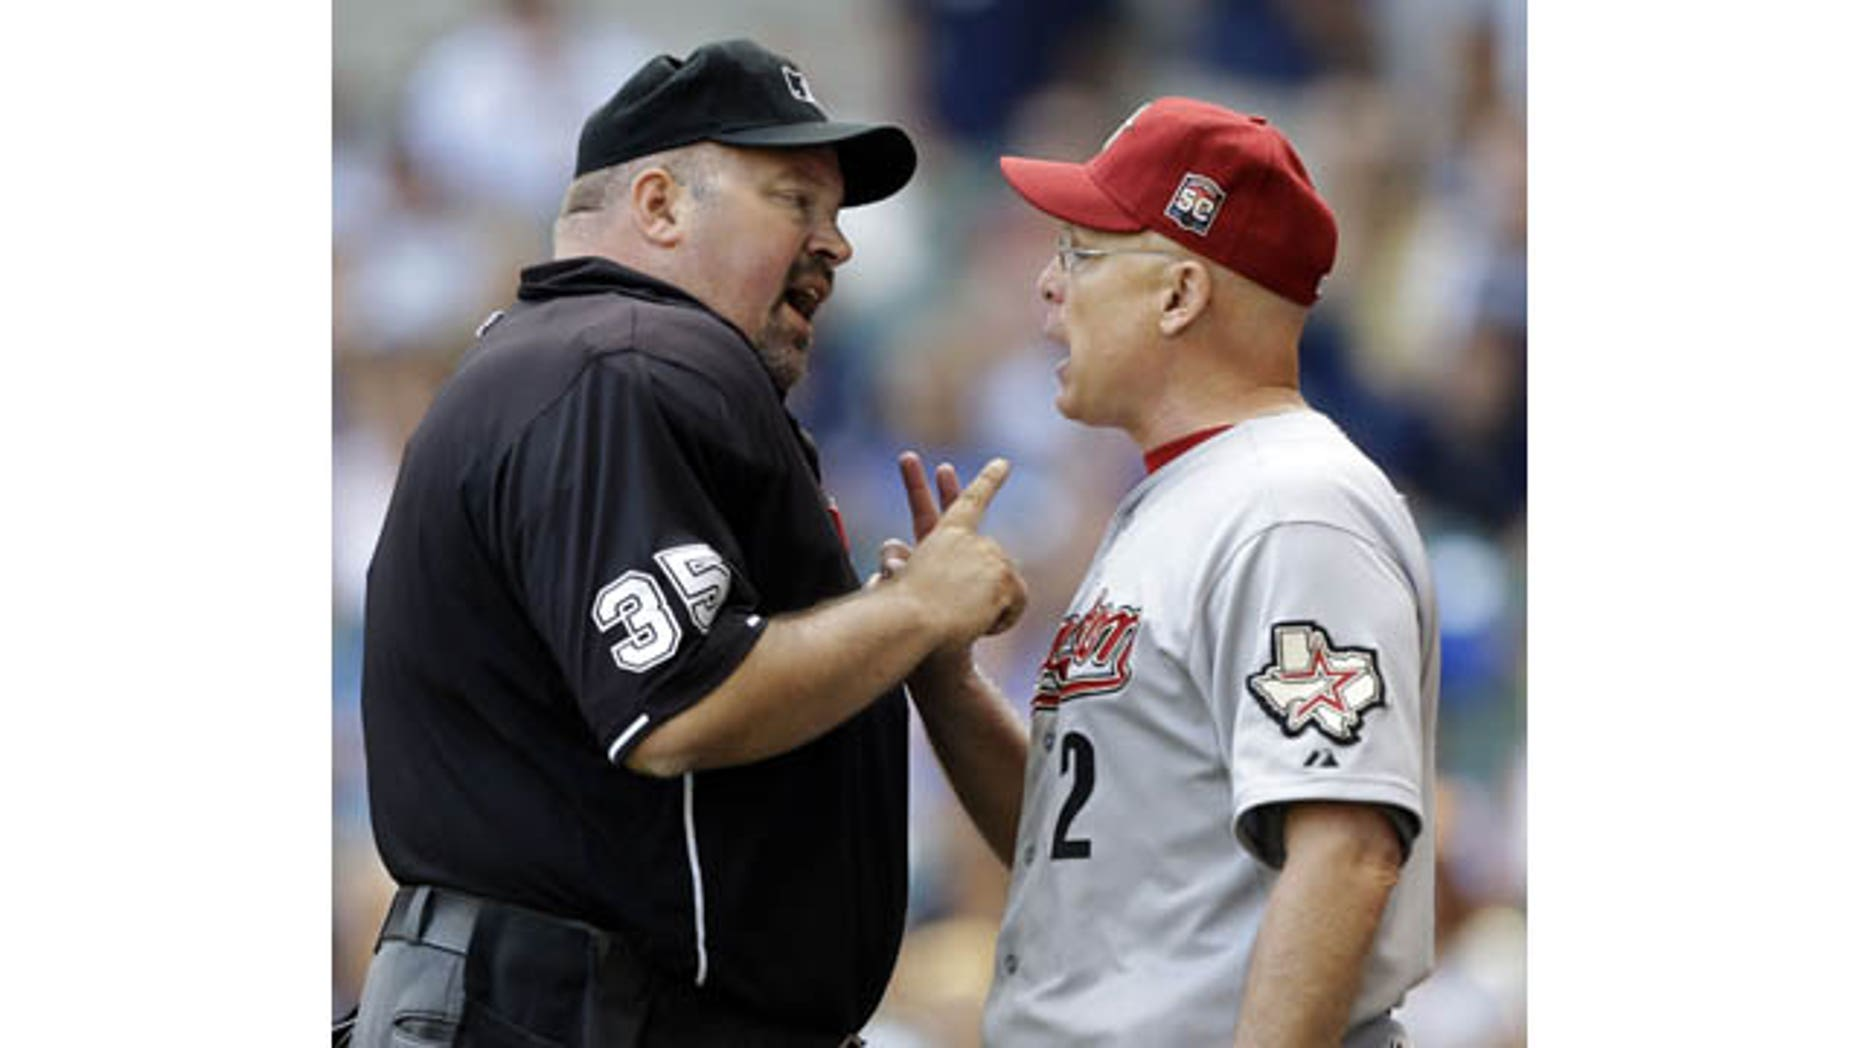 File-This Aug. 1, 2012 file photo shows Houston Astros manager Brad Mills, right, arguing with home plate umpire Wally Bell during the eighth inning of a baseball game against the Milwaukee Brewers in Milwaukee. (AP Photo)